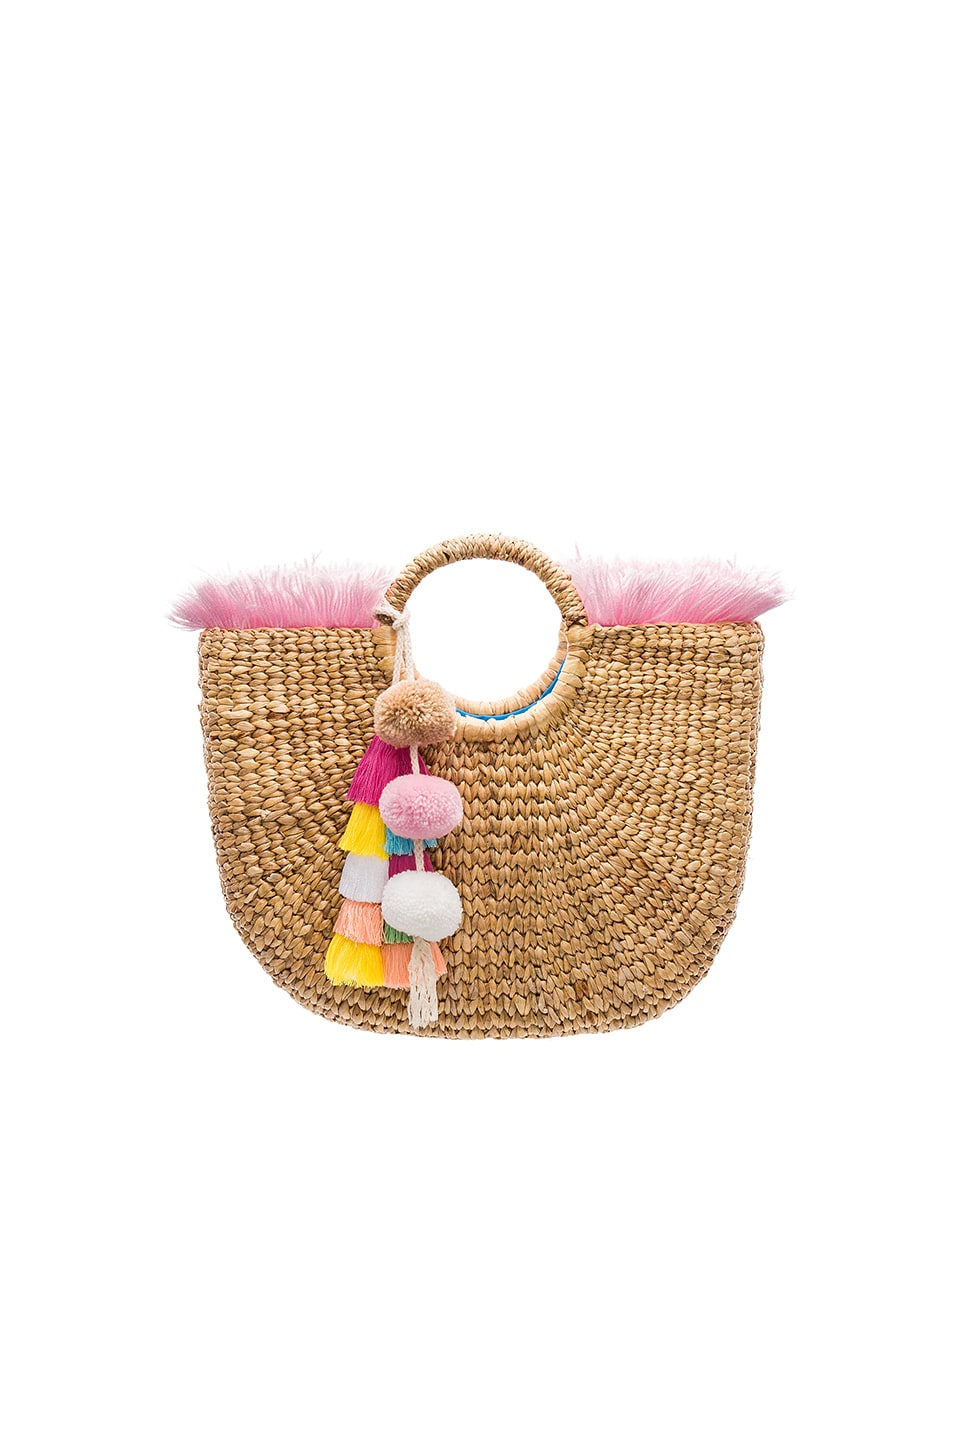 JADEtribe Round Fringe Tote in Blush and Pastel Tassel